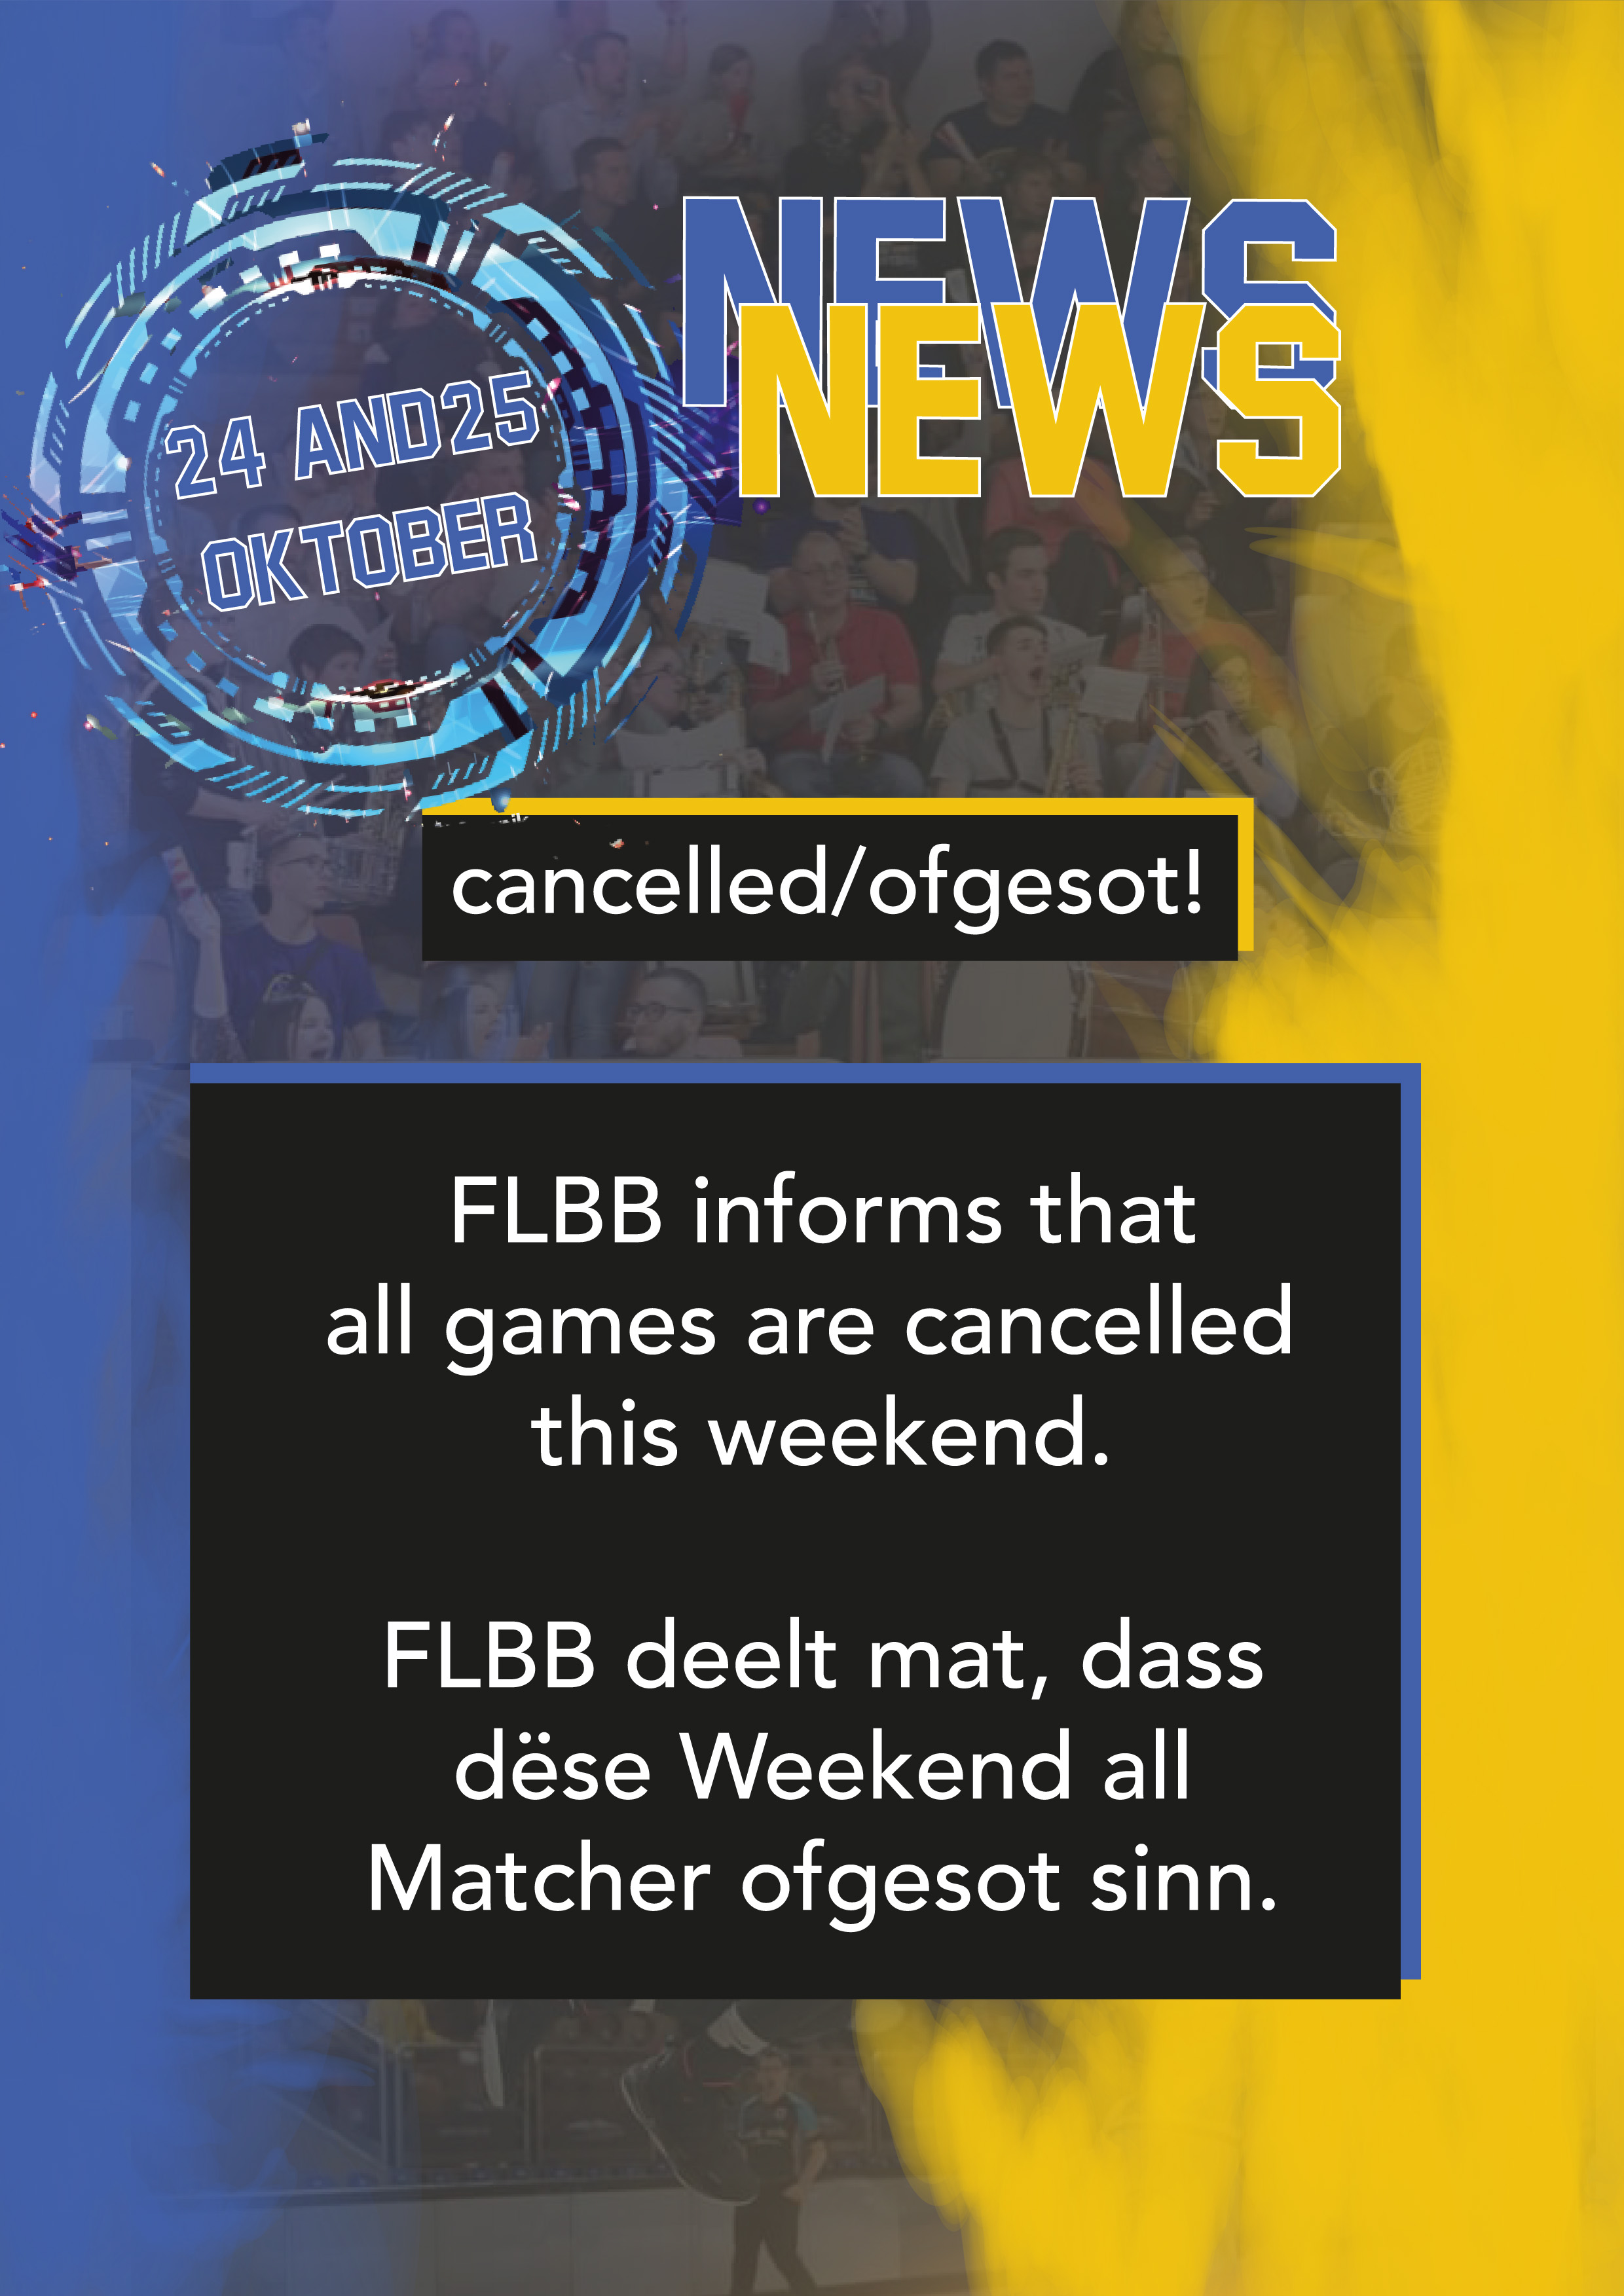 News: cancelled/ofgesot!